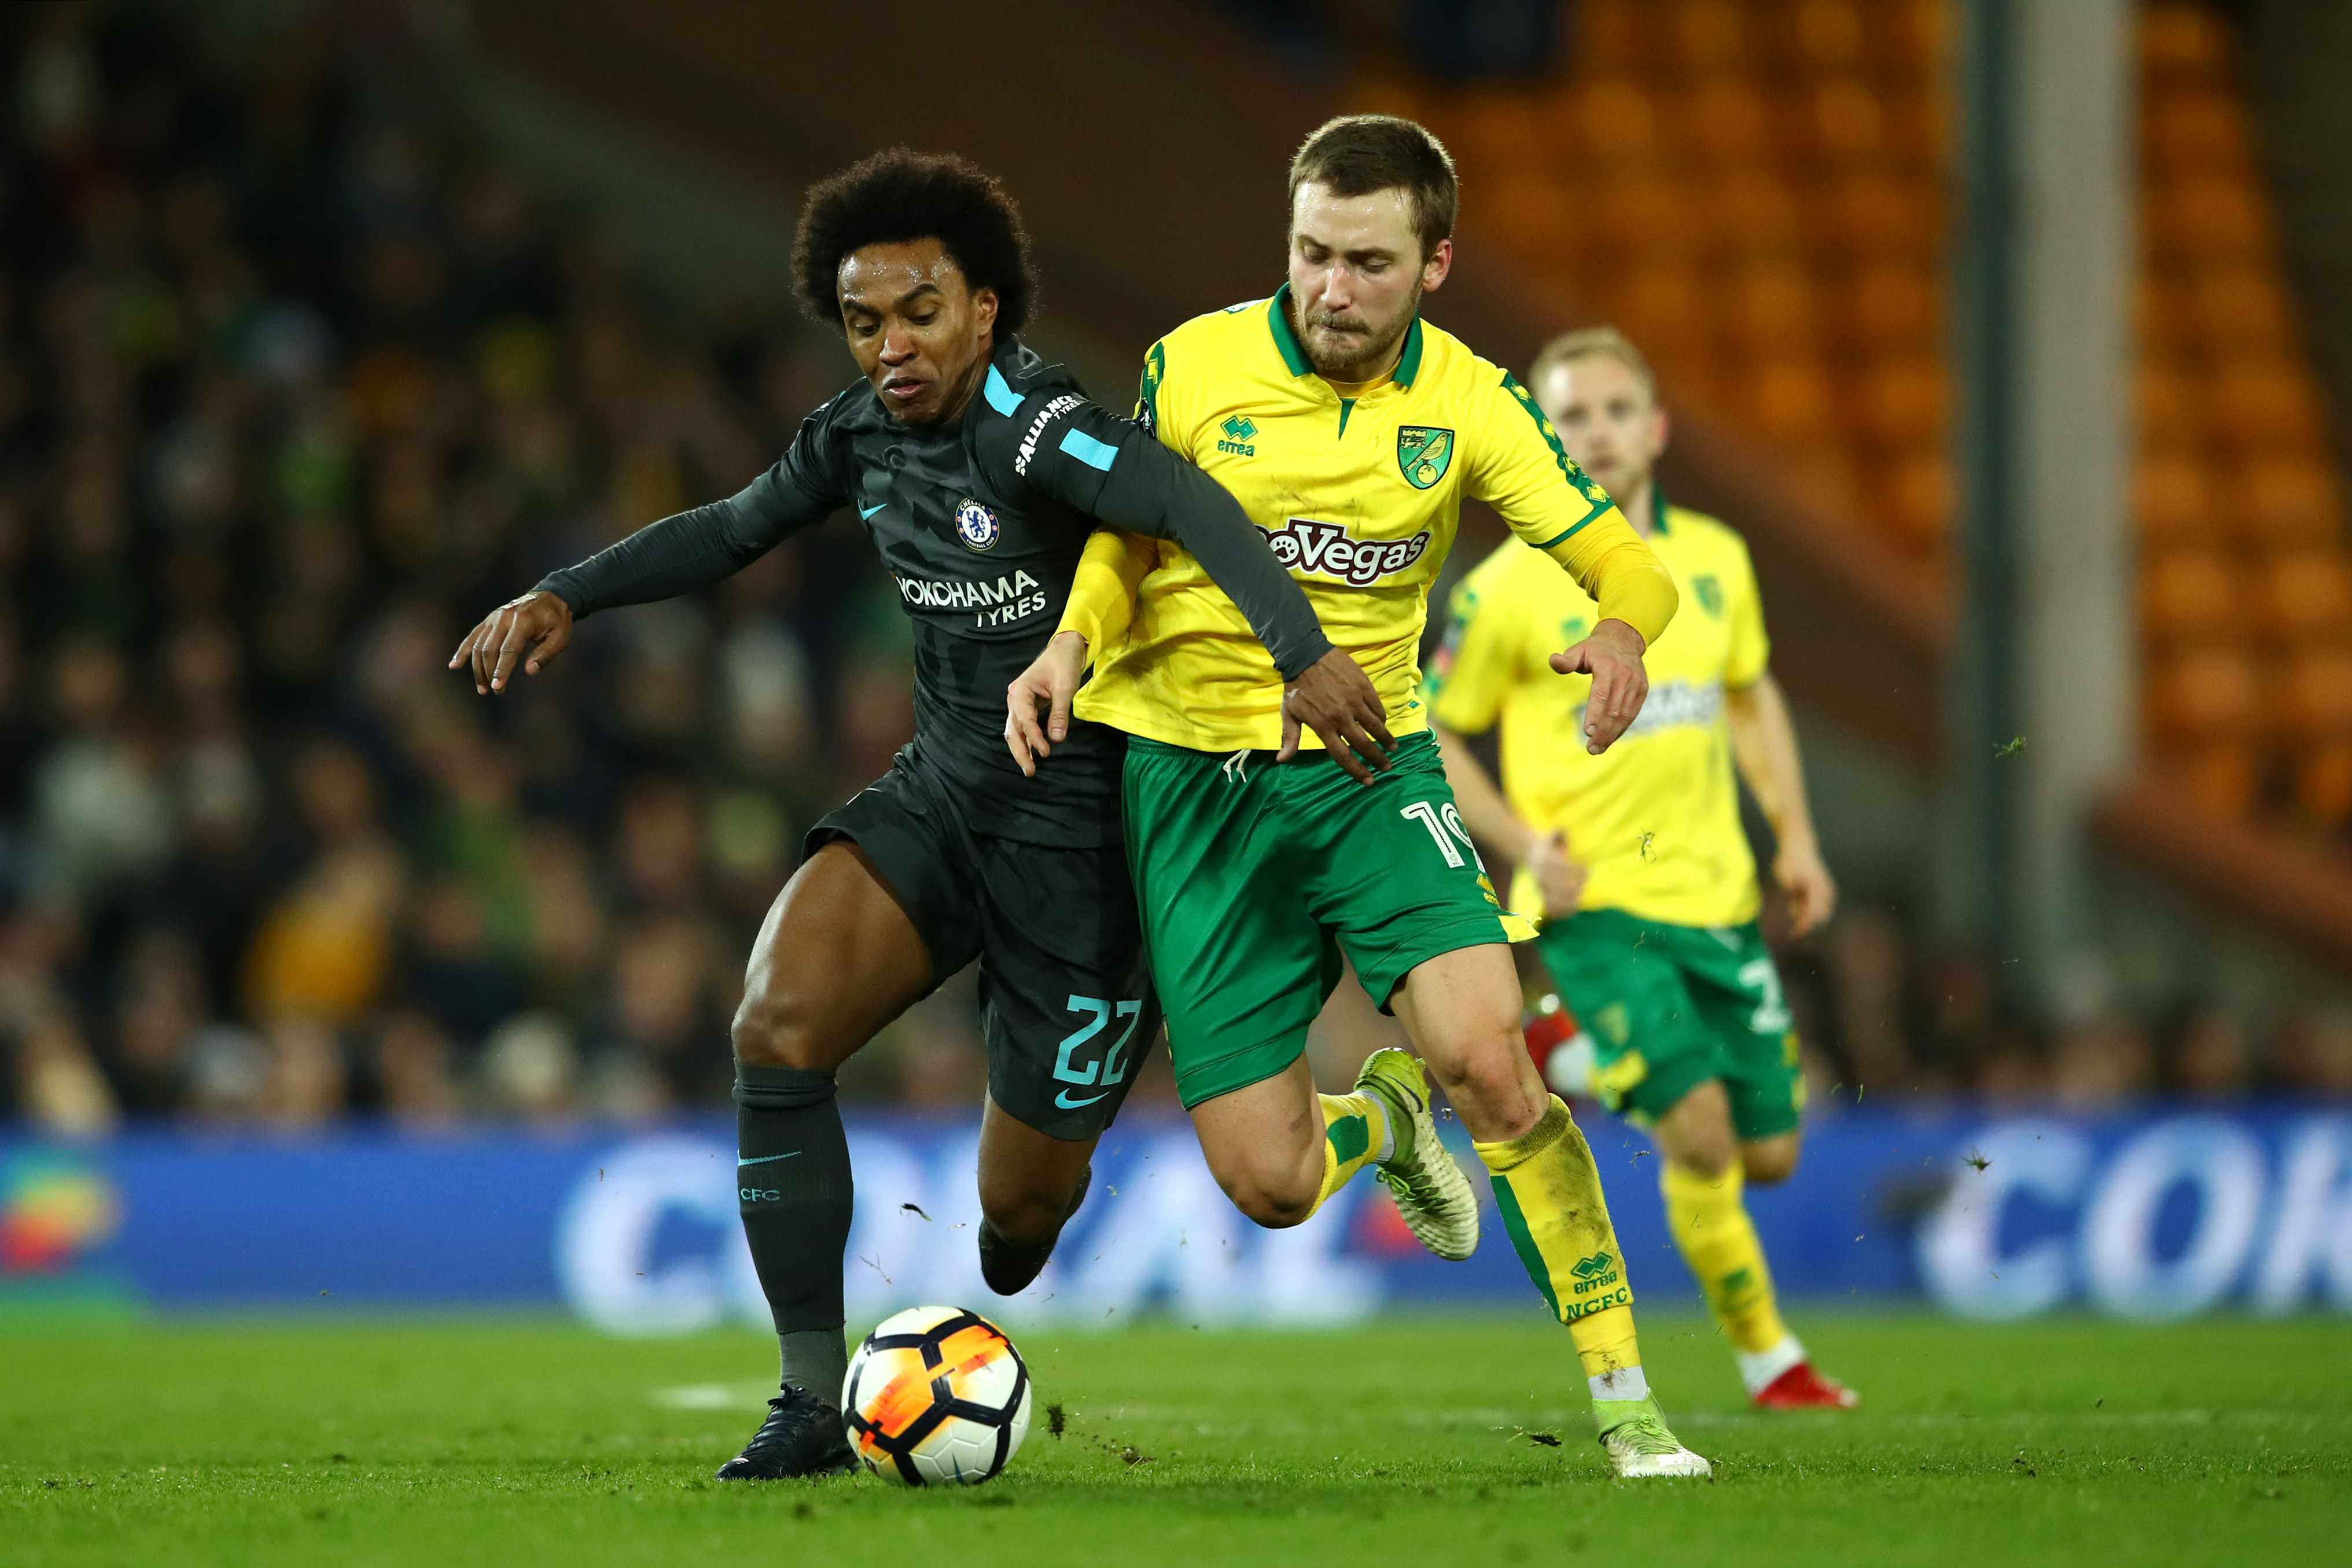 NORWICH, ENGLAND - JANUARY 06:  Willian of Chelsea challenges Tom Trybull of Norwich City during the Emirates FA Cup Third Round match between Norwich City and Chelsea at Carrow Road on January 6, 2018 in Norwich, England.  (Photo by Clive Mason/Getty Images)  TL